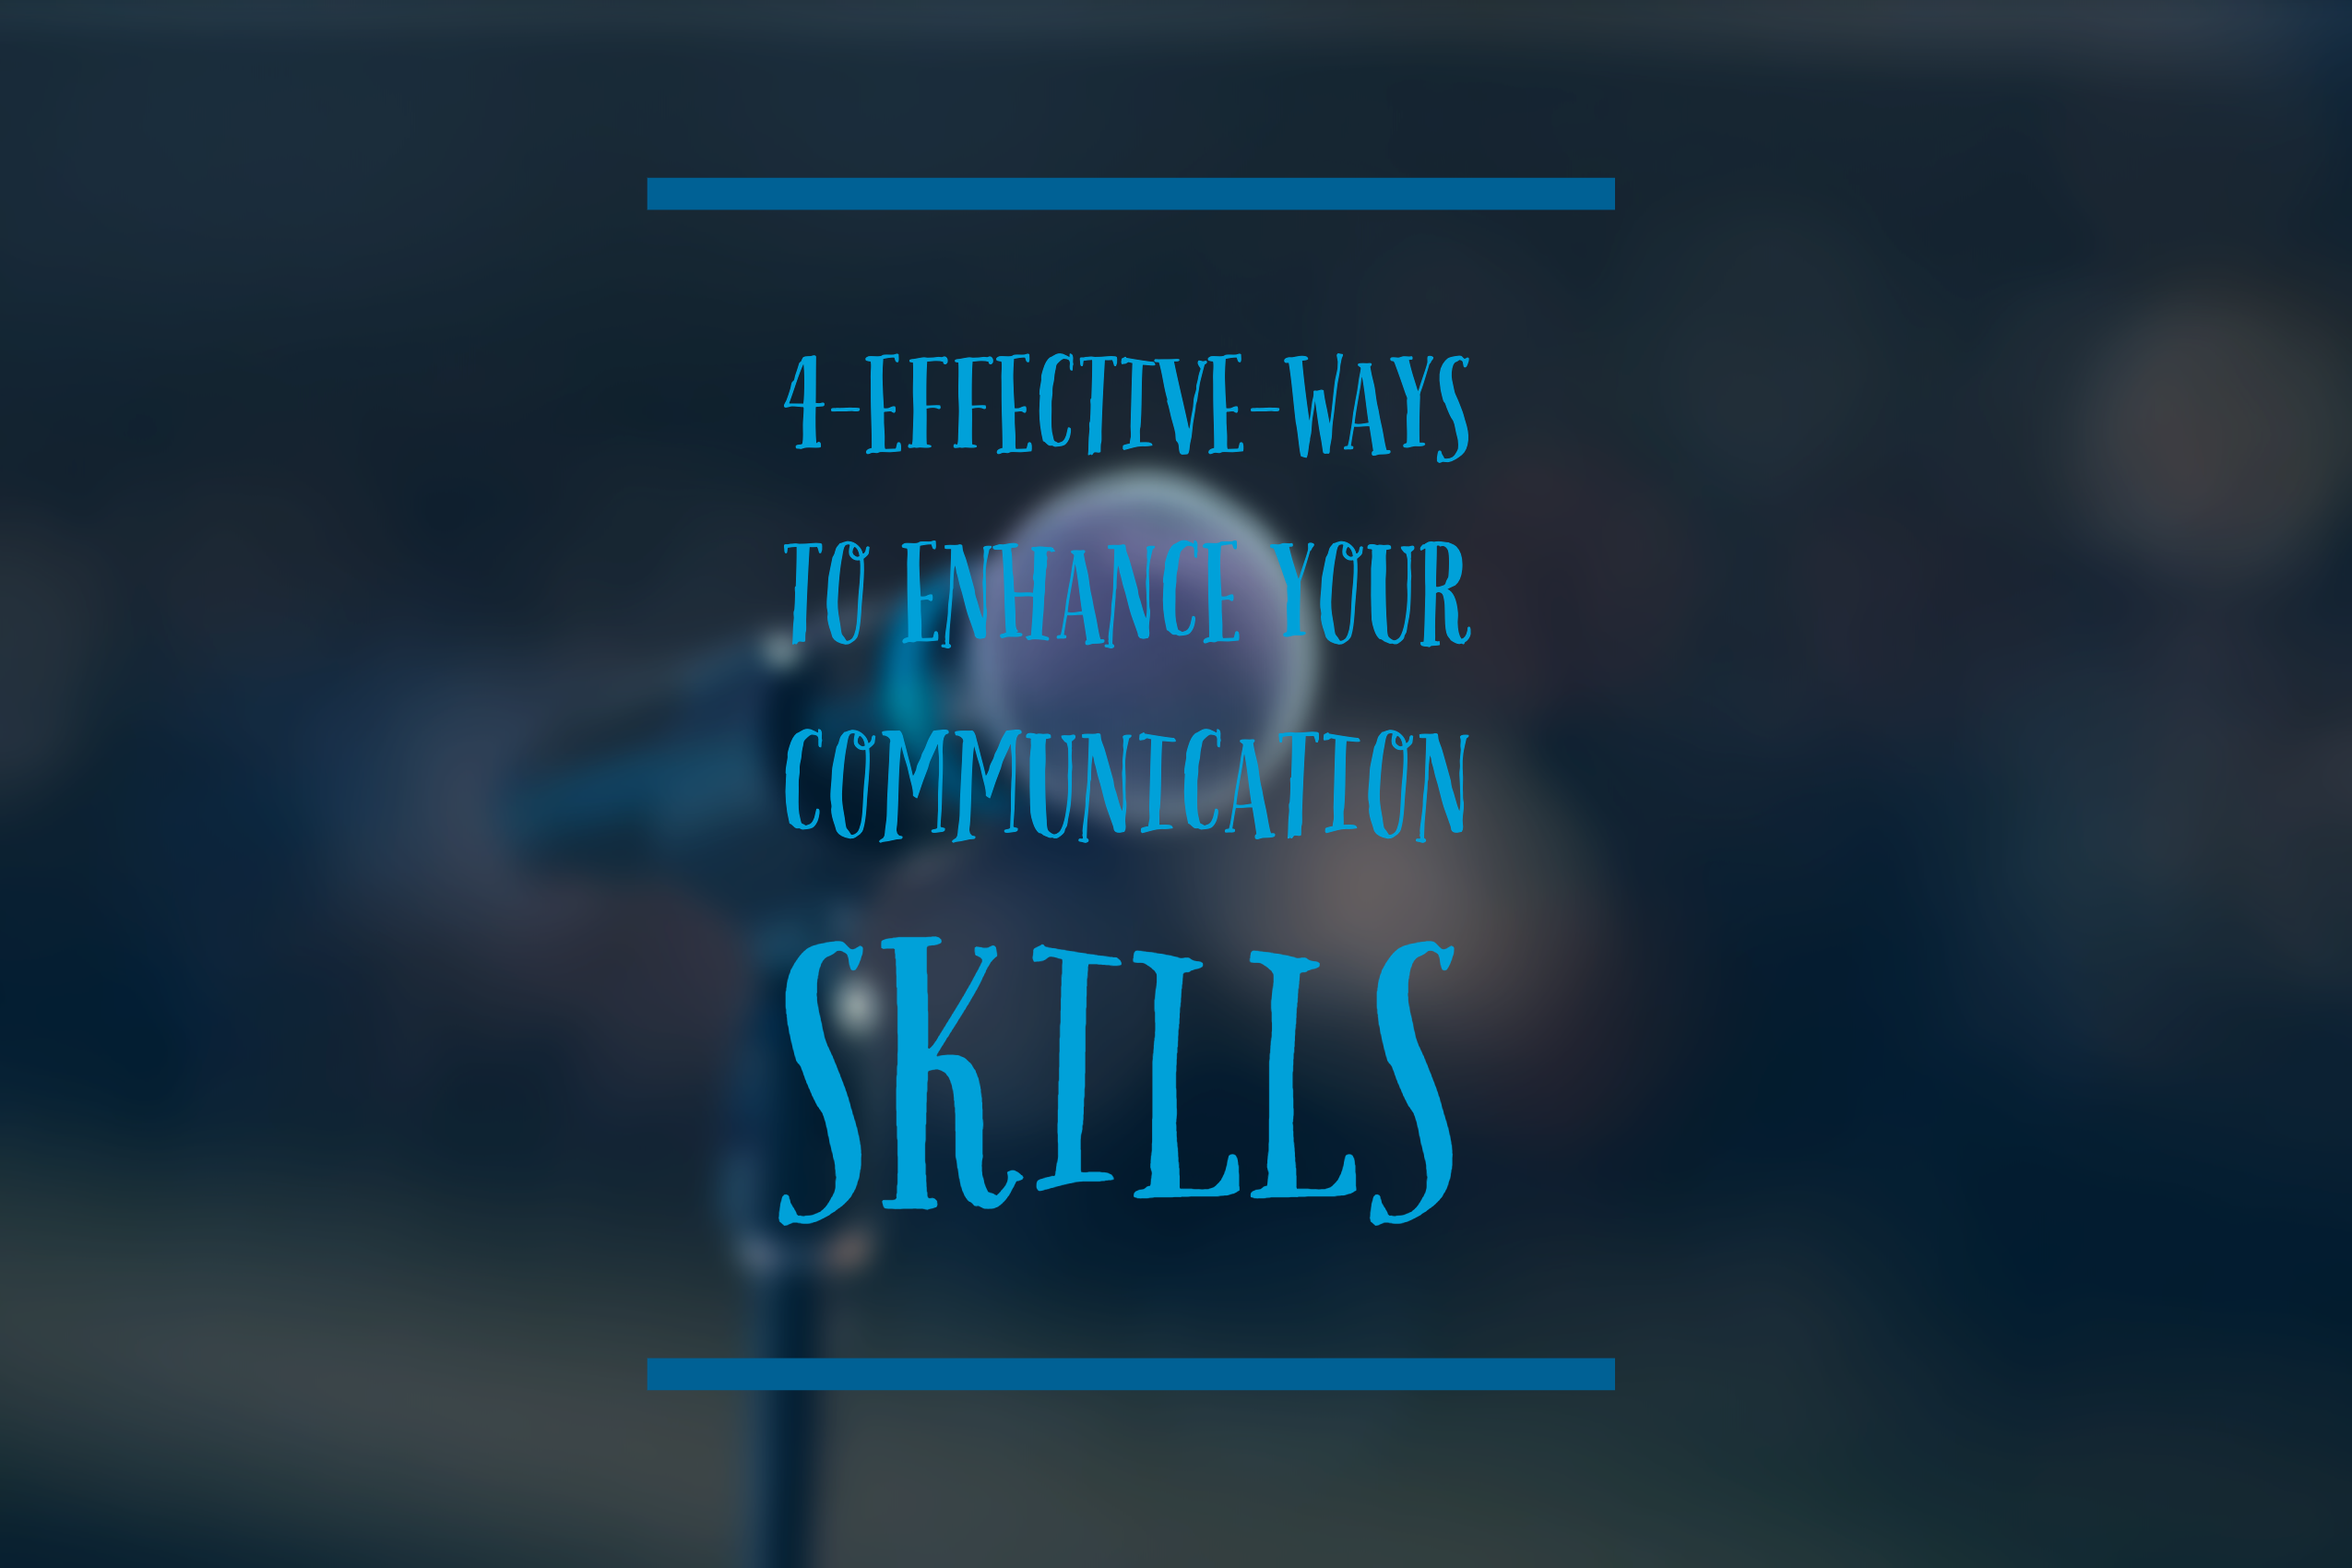 How To Use Non-Violent Communication To Strengthen Your Communication Skills